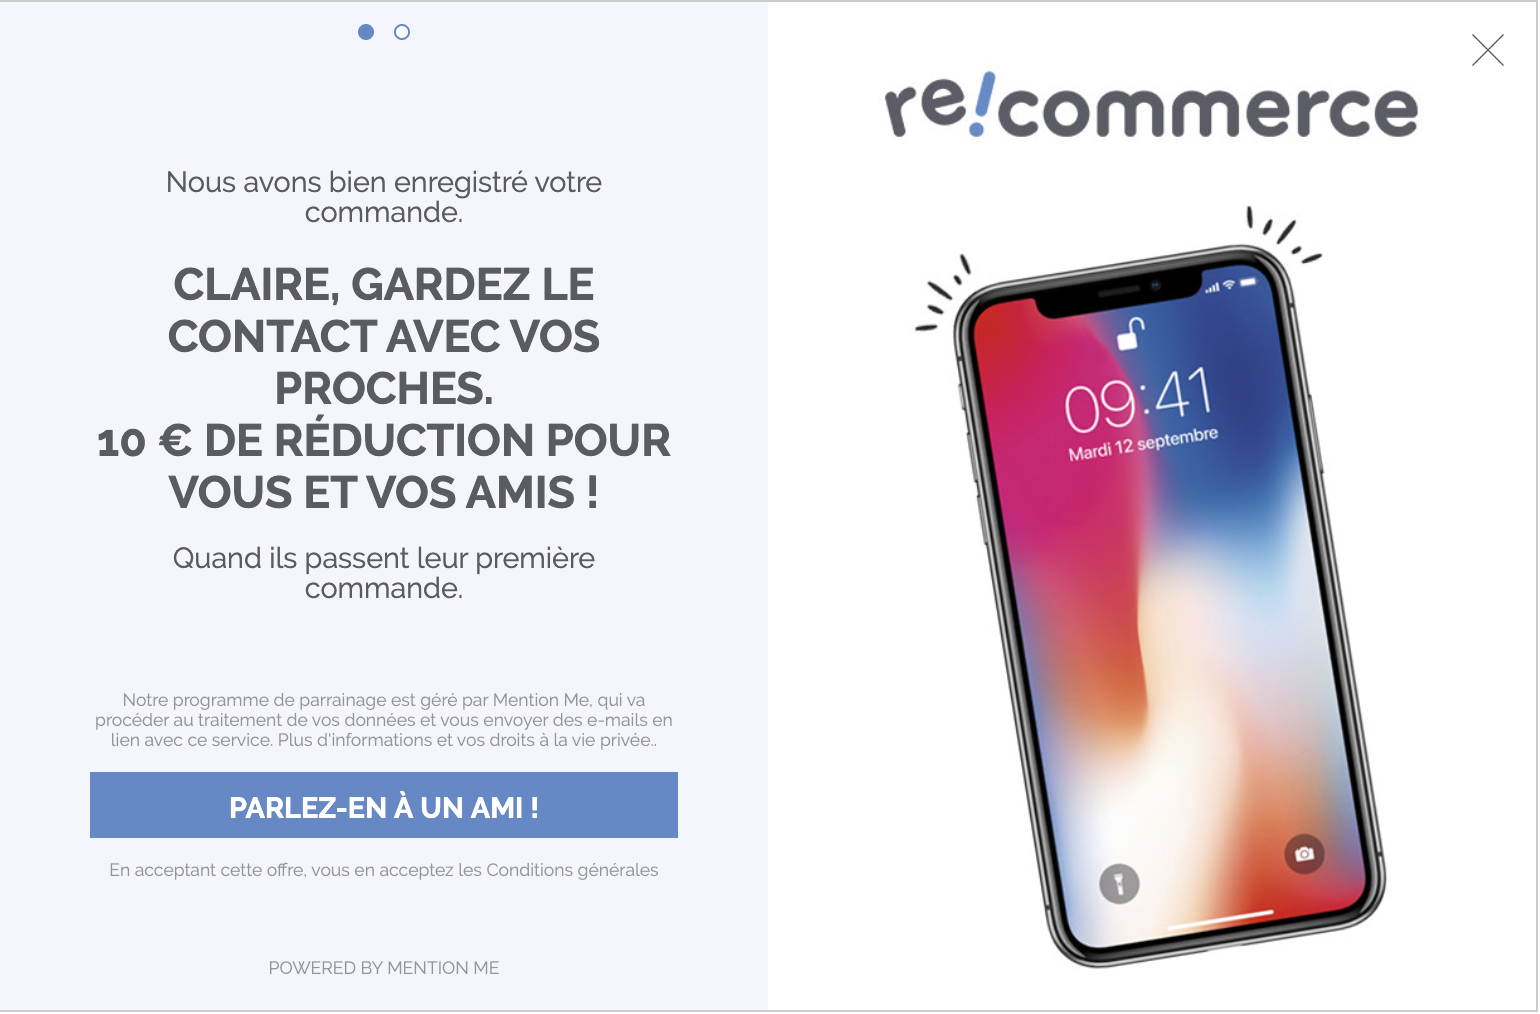 Recommerce refer-a-friend campaign